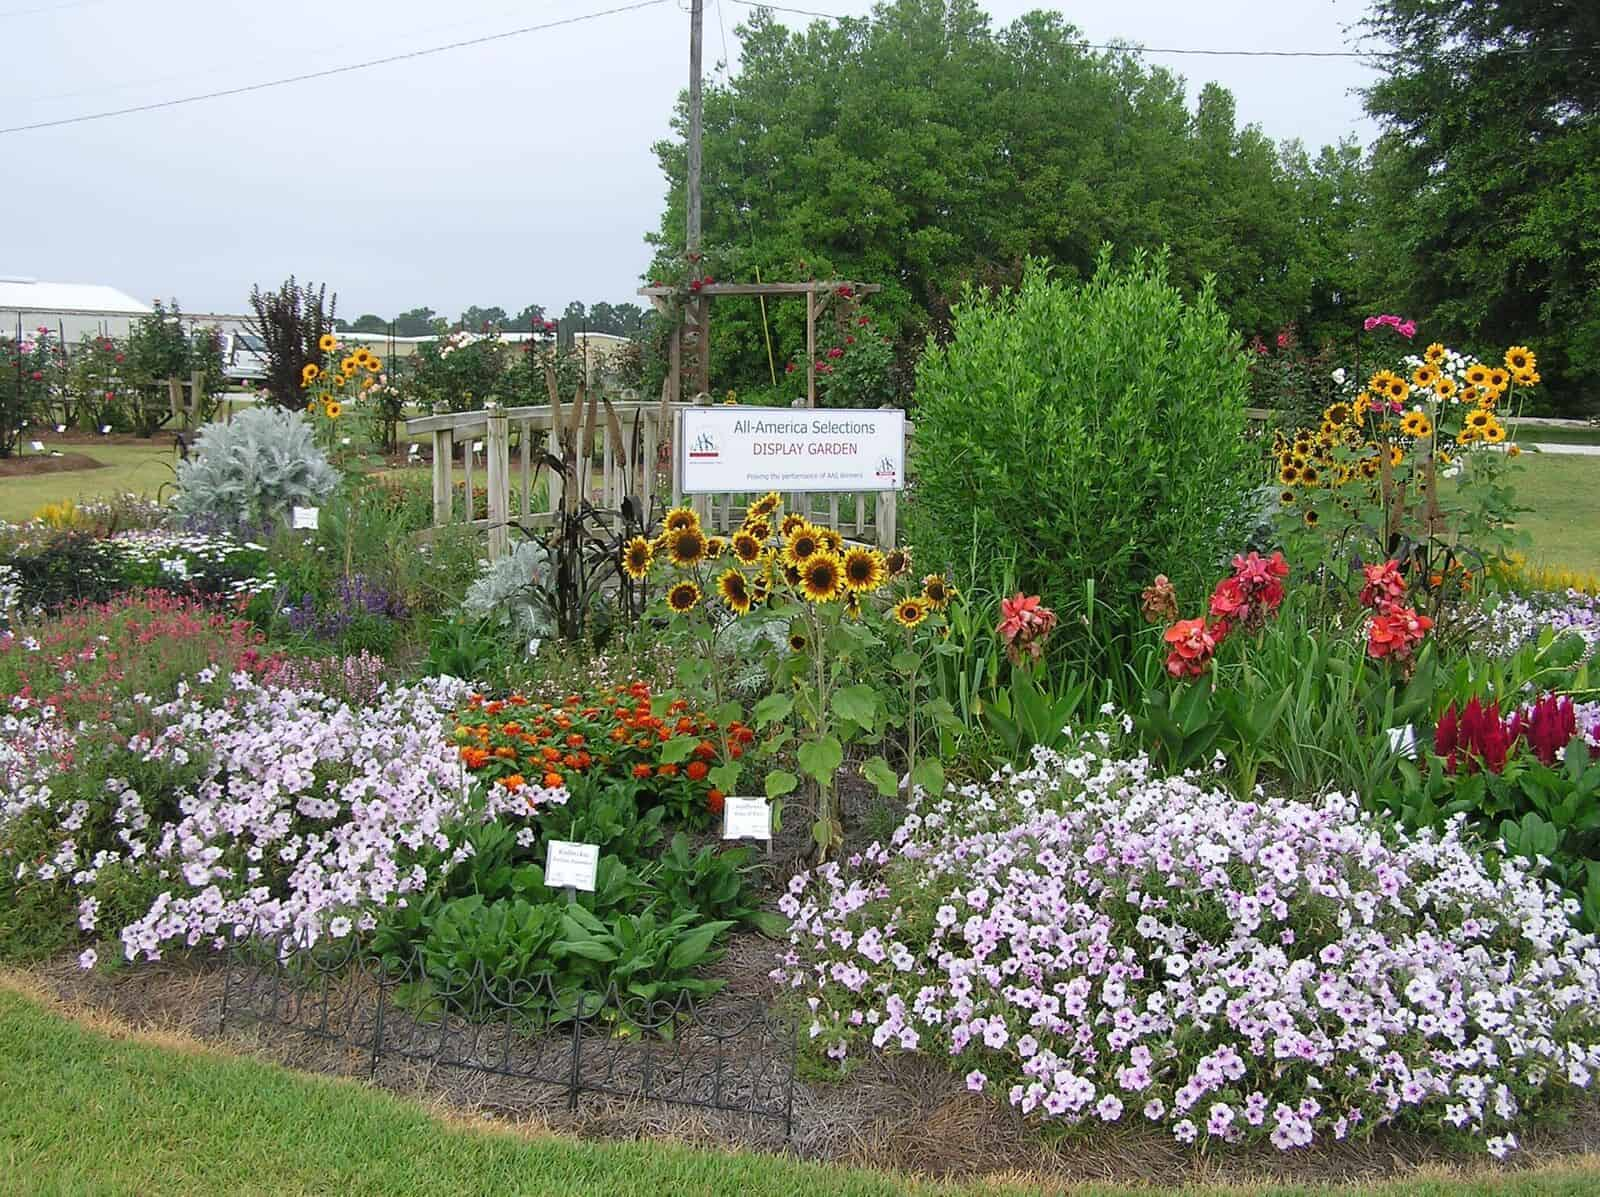 Where Can I Find An AAS Display Garden